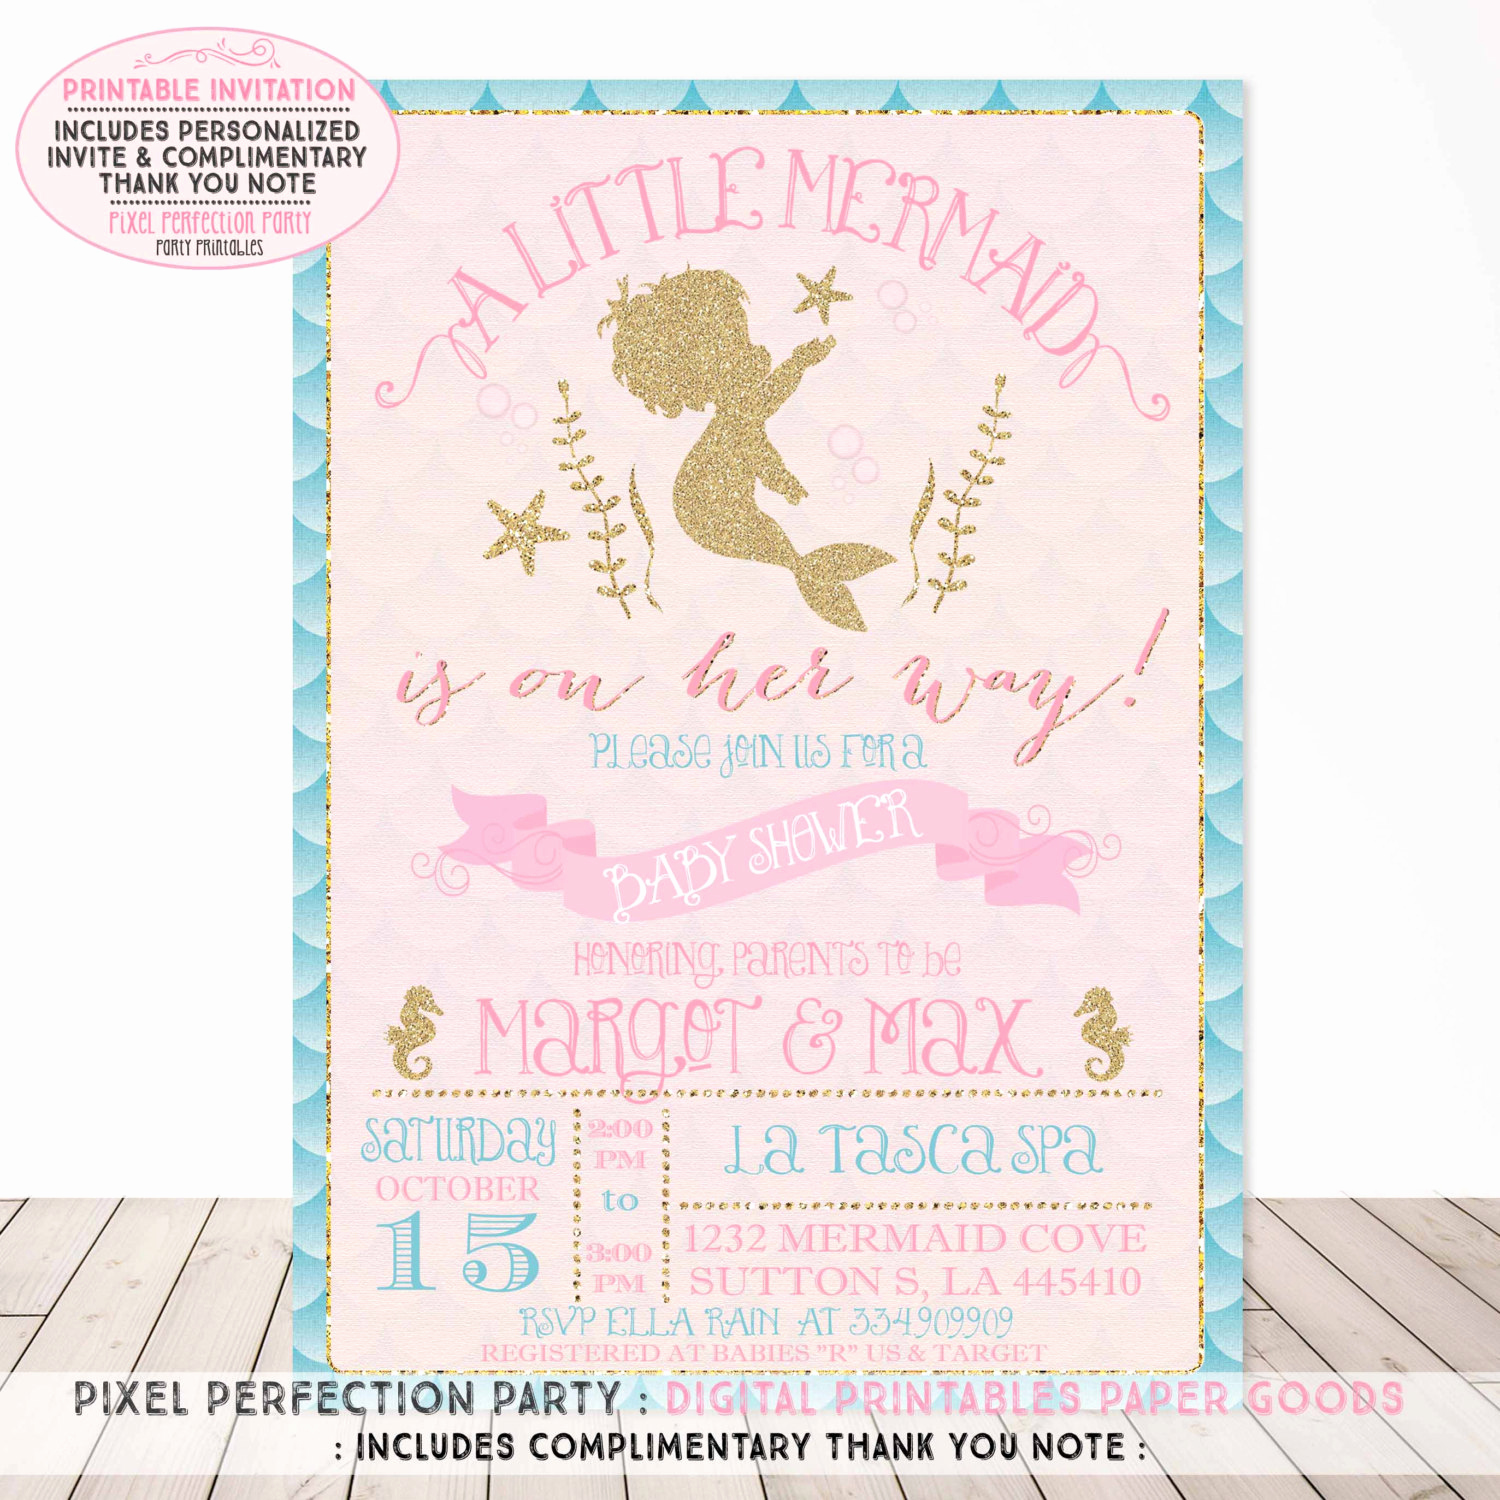 Mermaid Baby Shower Invitations Lovely Mermaid Baby Shower Invitation Aqua Pink Gold Sparkle Baby